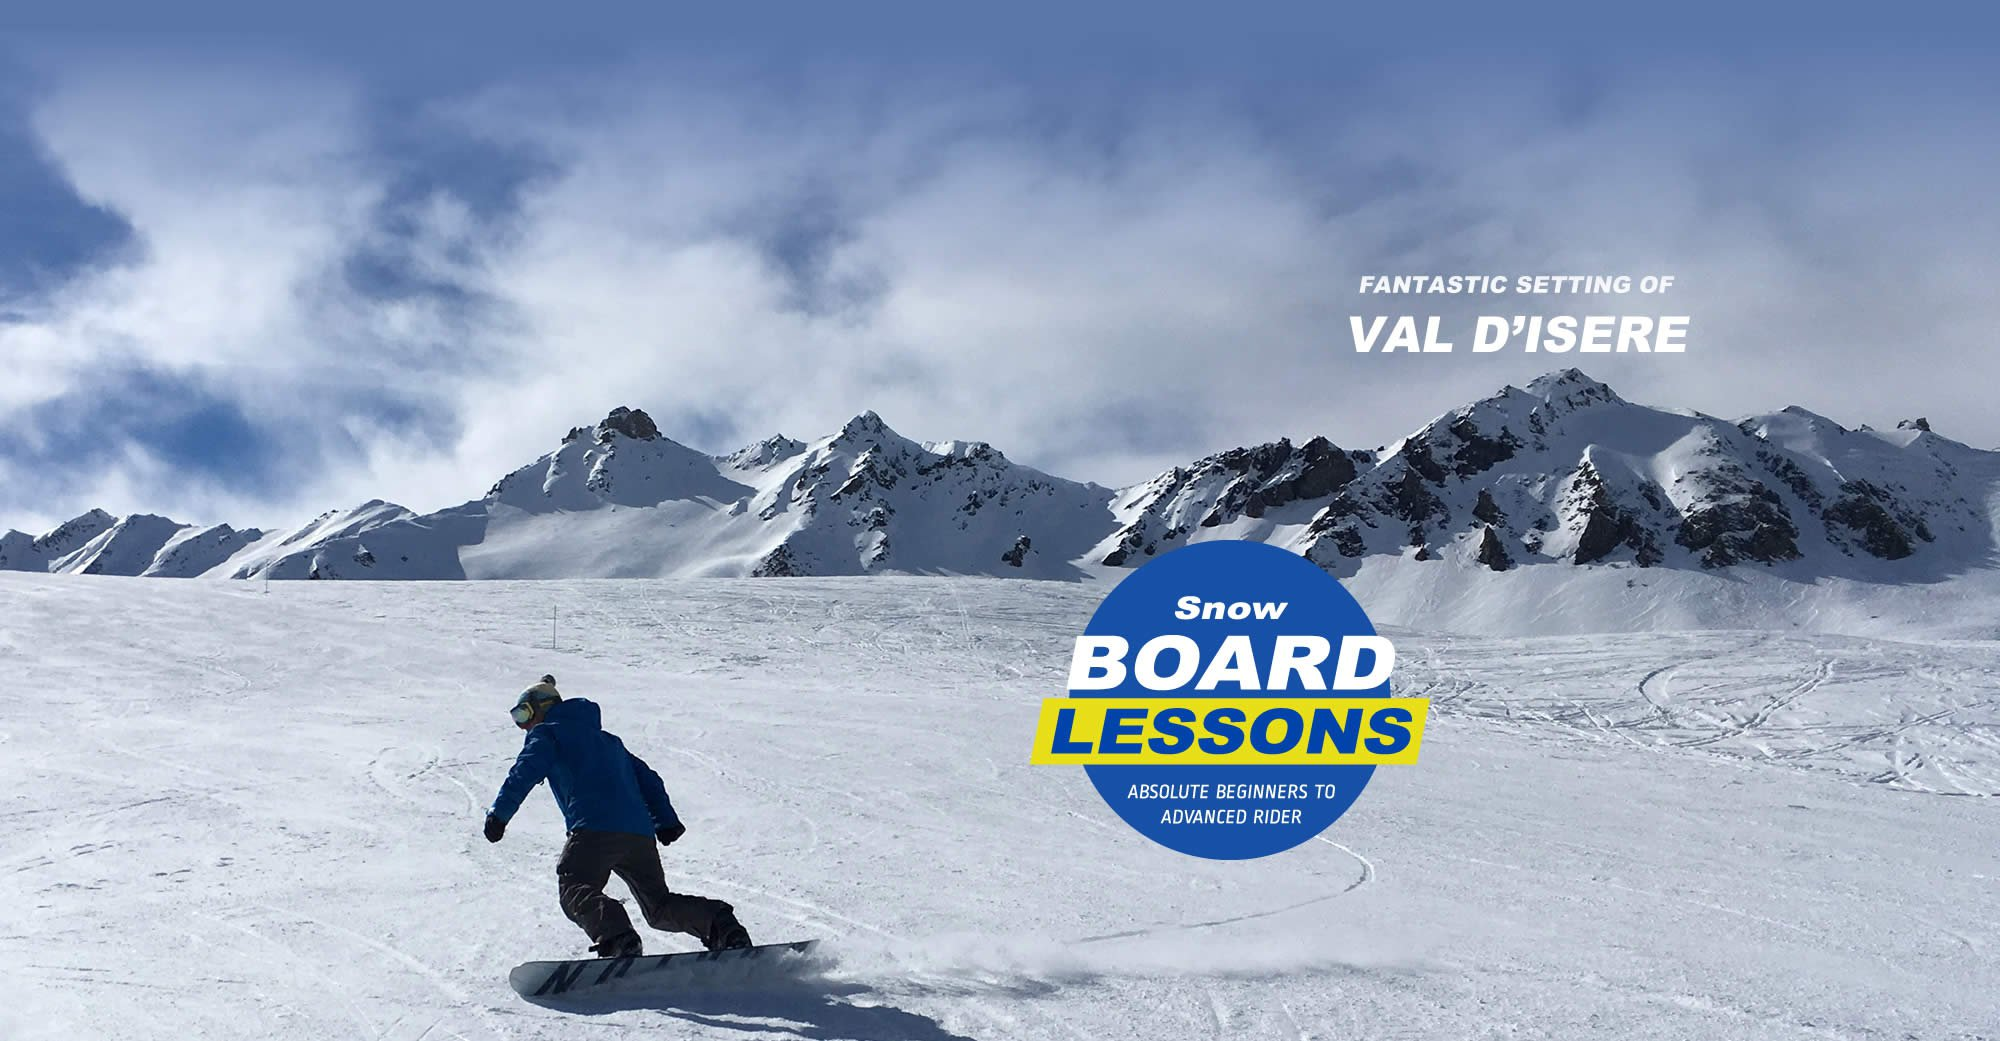 Snowboarding Instruction at Val d'Isere in the French Alps